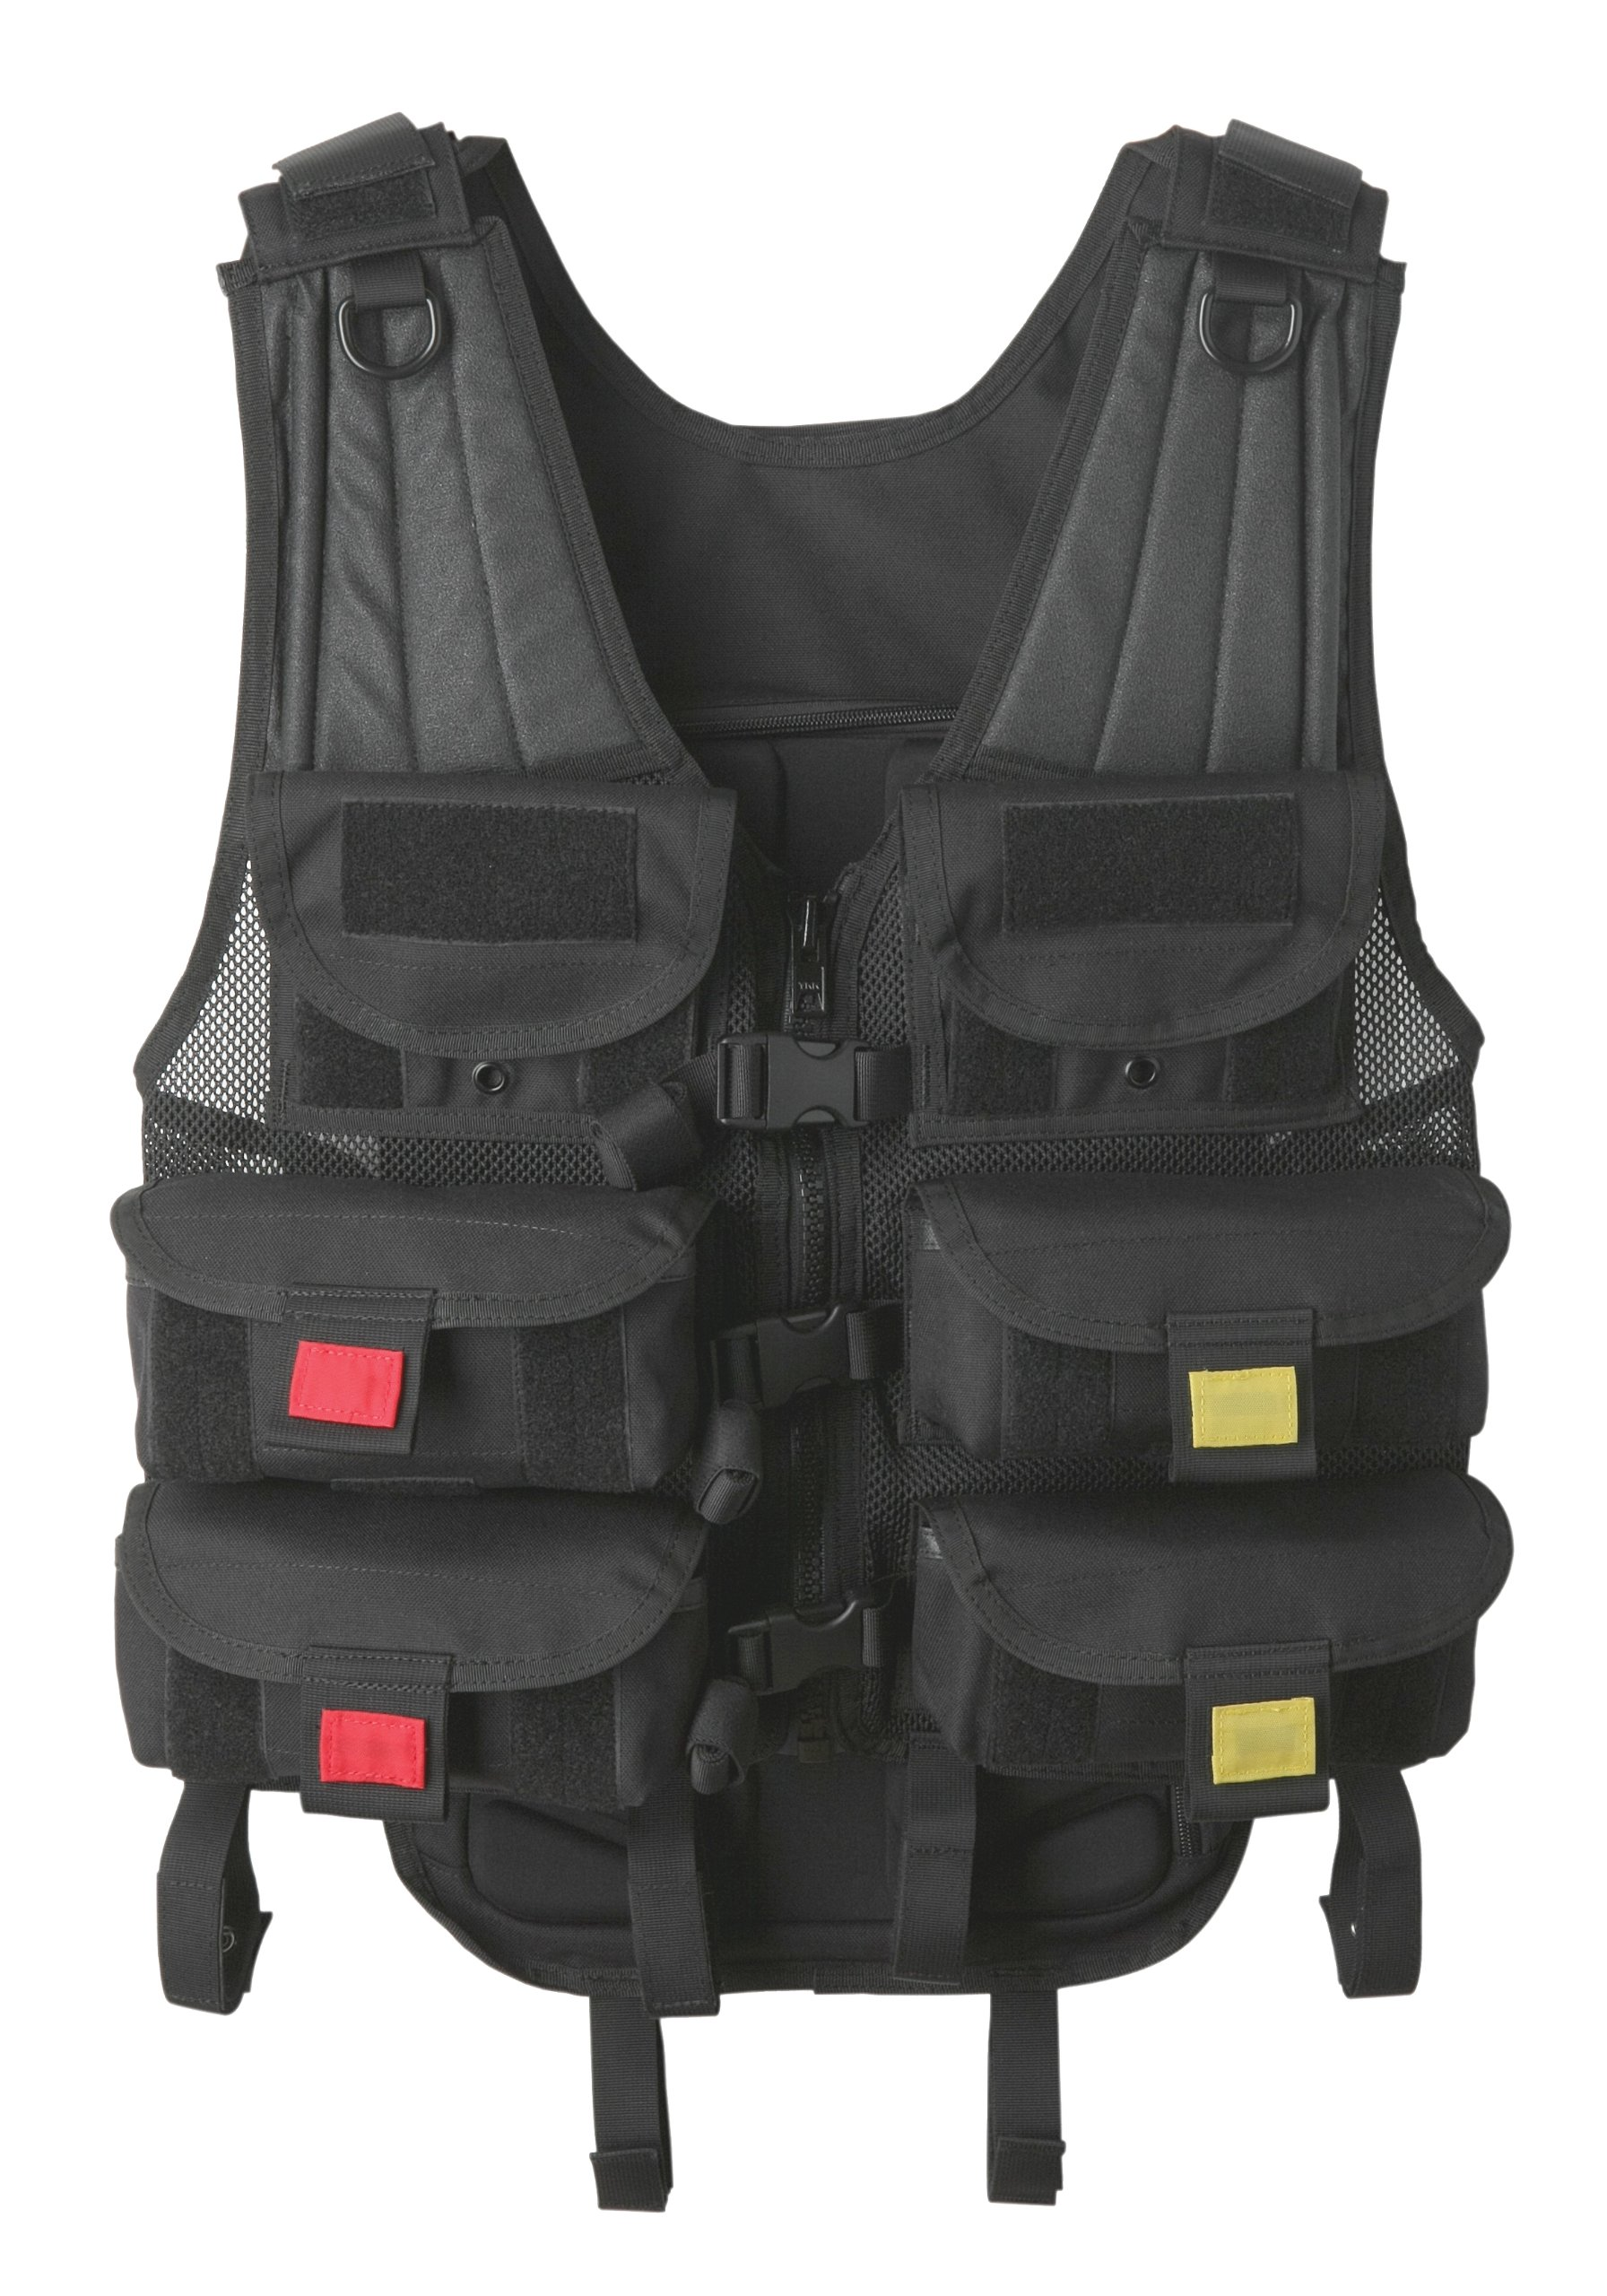 Uncle Mike's Law Enforcement Shotgunner / Breacher Load Bearing Tactical Vest by Uncle Mike's